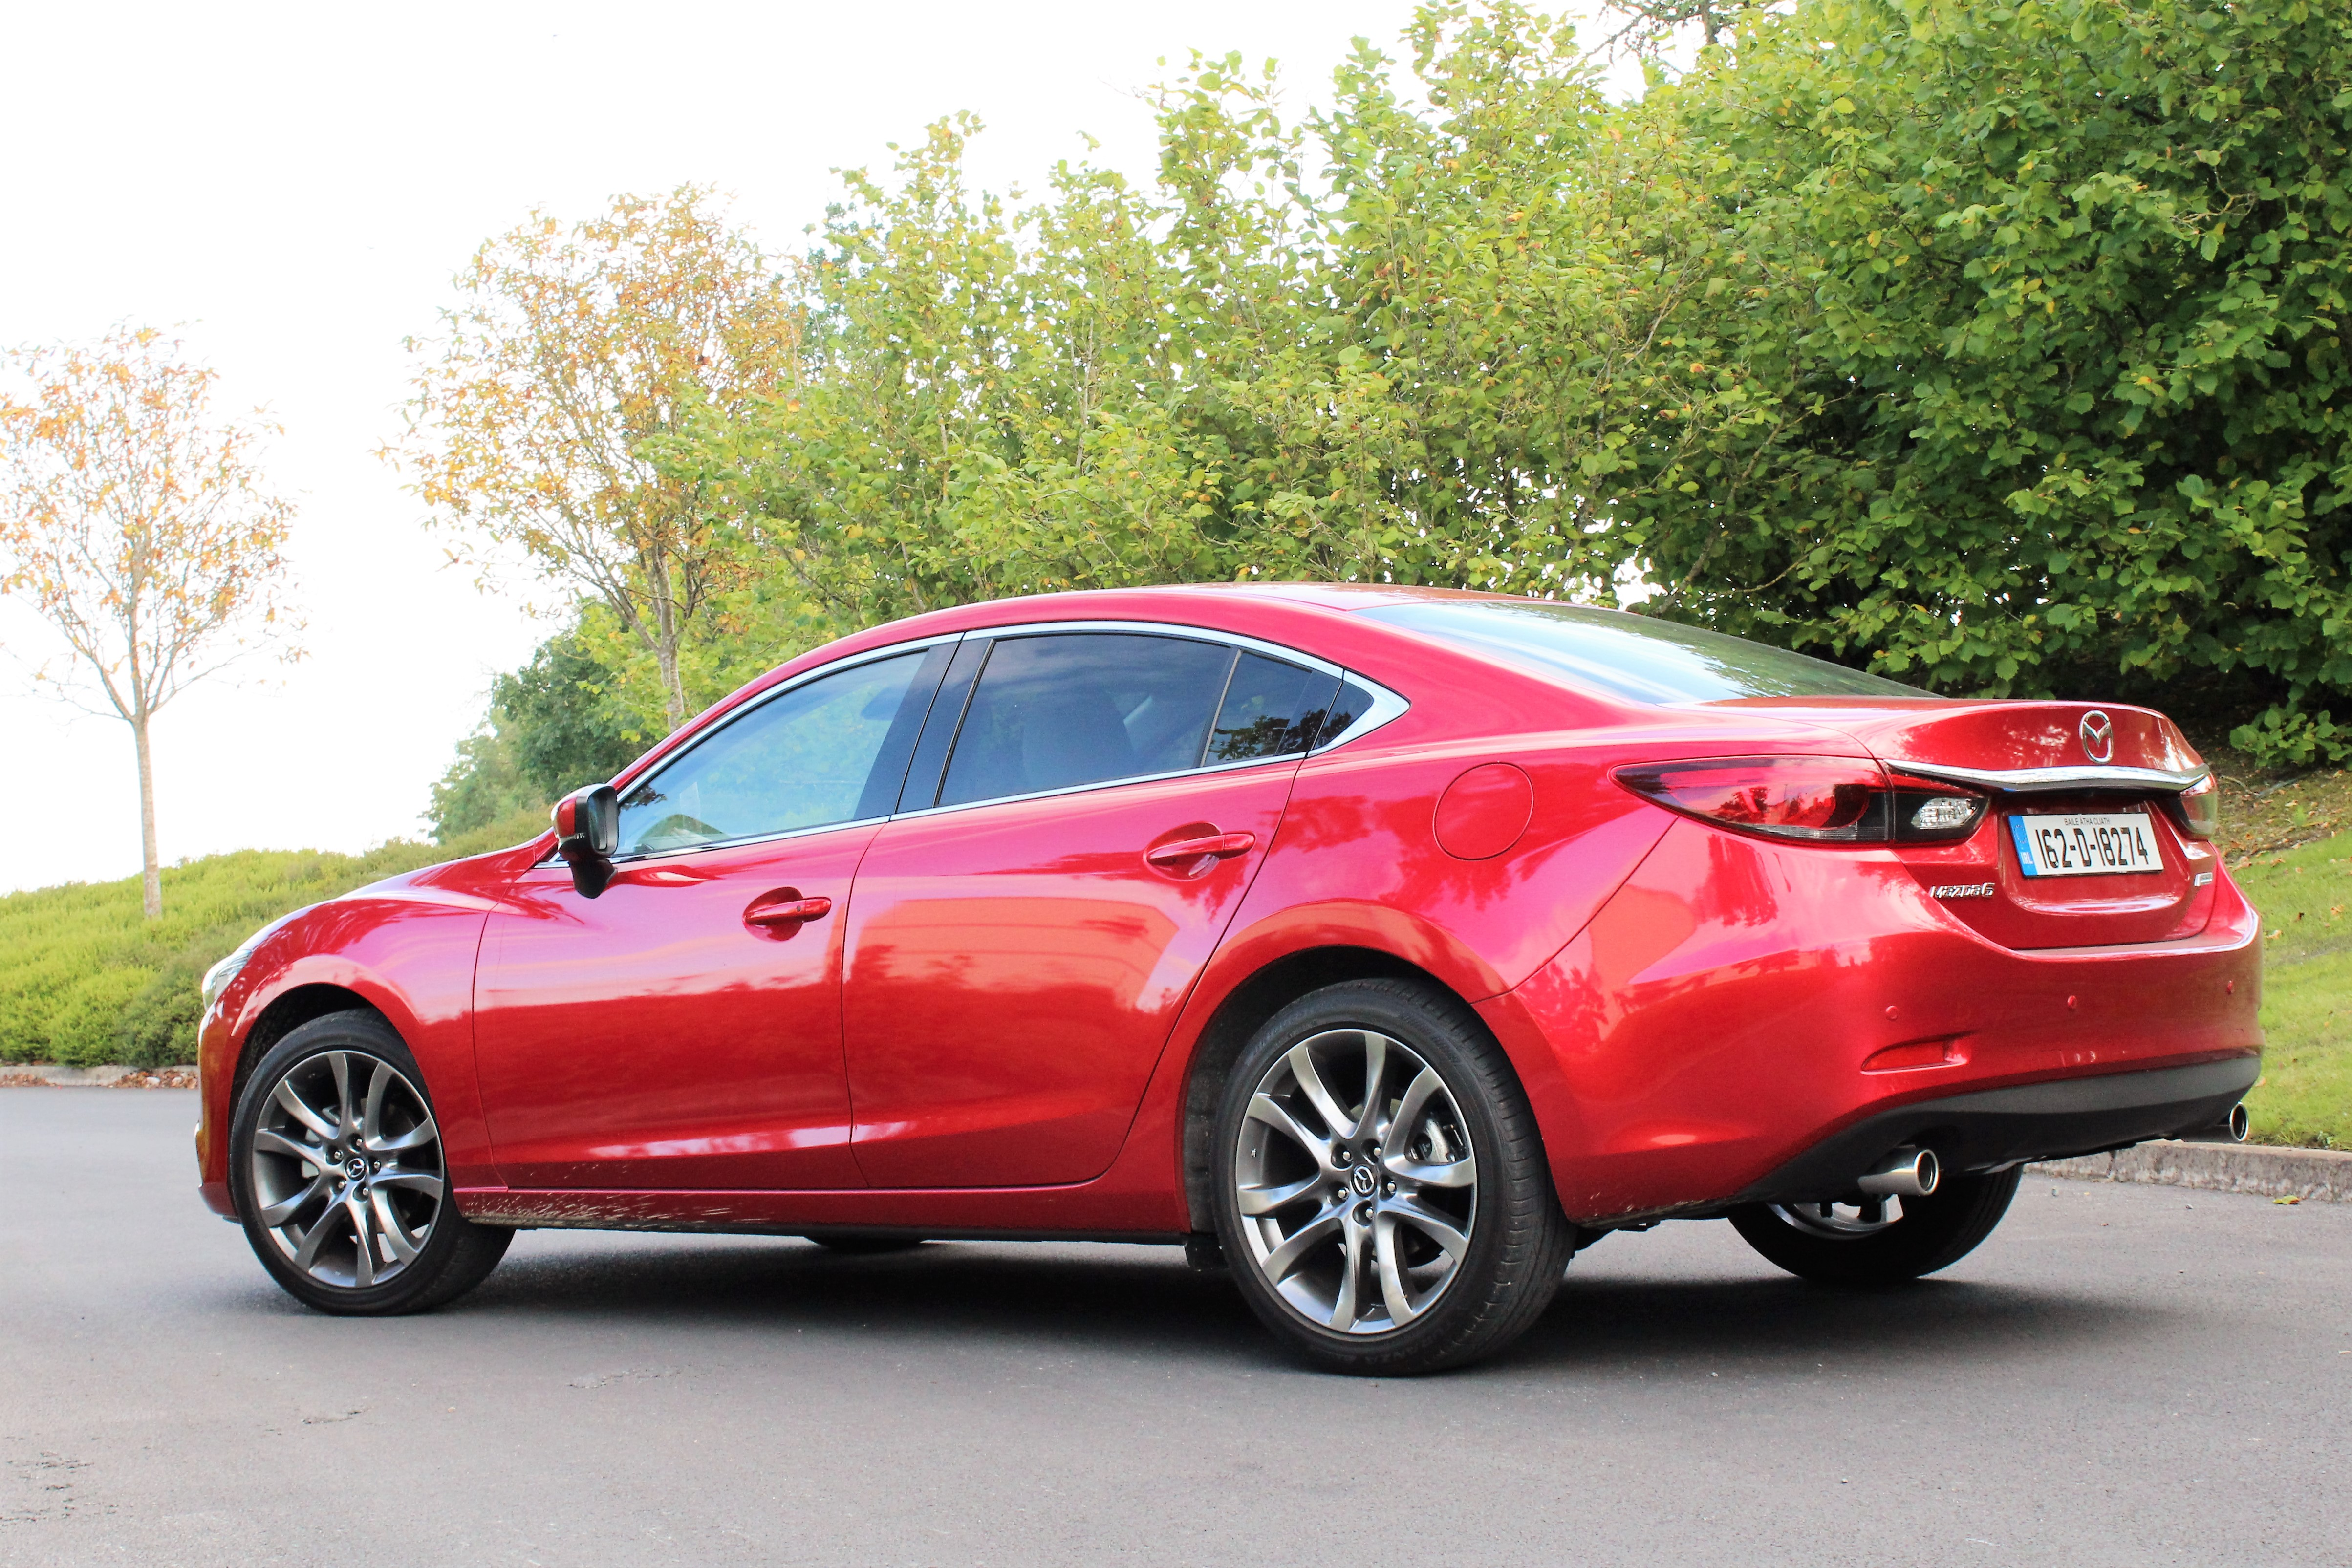 ... To Test The Mazda6 In Manual Transmission The Automatic Gearbox Proved  To Be Almost Flawless Whilst It Was Mated With The 2.2 Litre Turbo Diesel  Engine ...